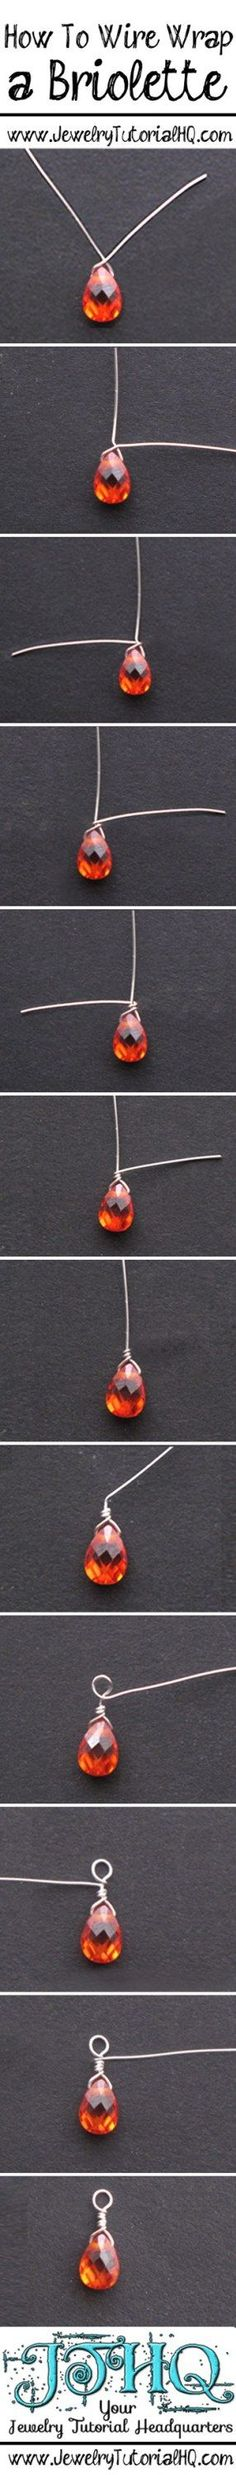 how to wire wrap a briolette                                                                                                                                                      More